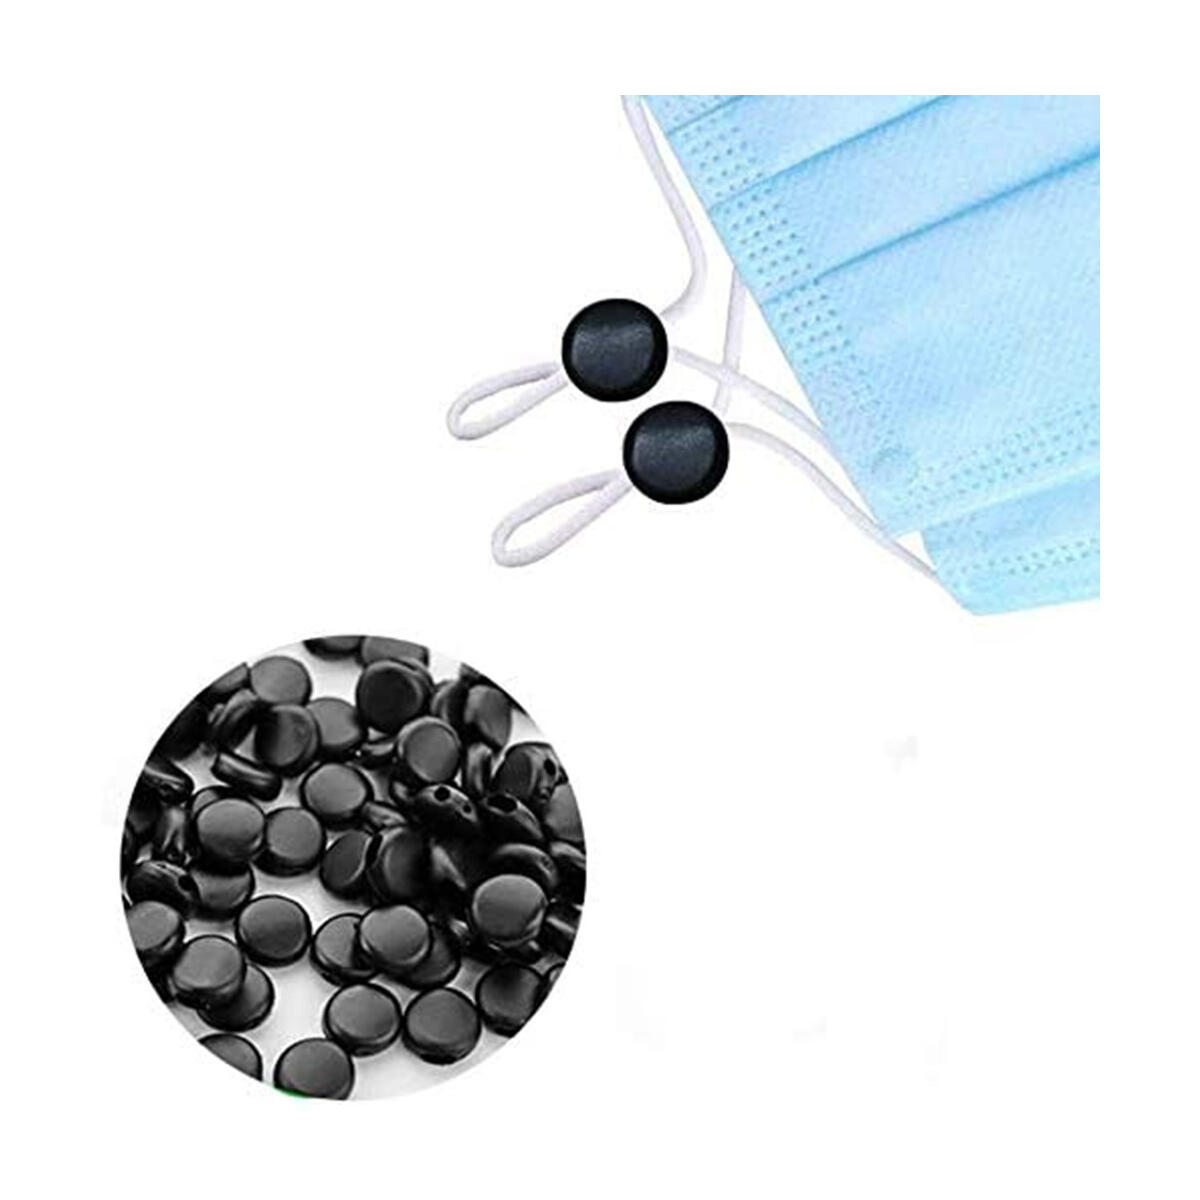 ARGIGU 110 Yards 5mm Black Elastic Strings for Masks Making Braided Elastic Roll Bands for Sewing with100pcs Nose Bridge Strip and 20 pcs Cord Locks